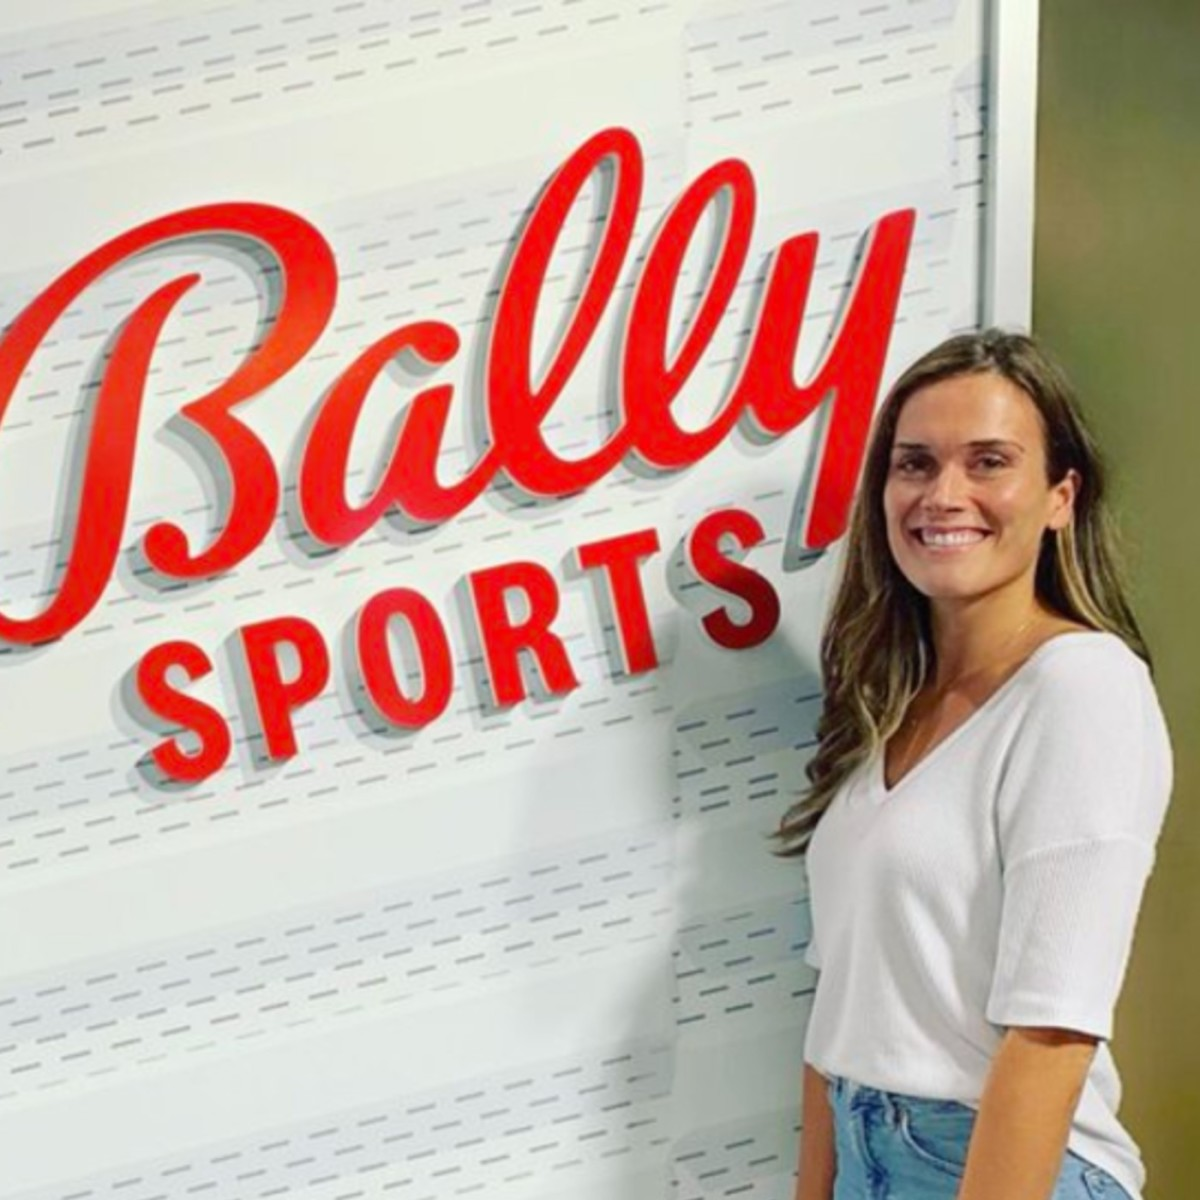 Katie Storm Twitter Bally Sports North - Aug 4 2021